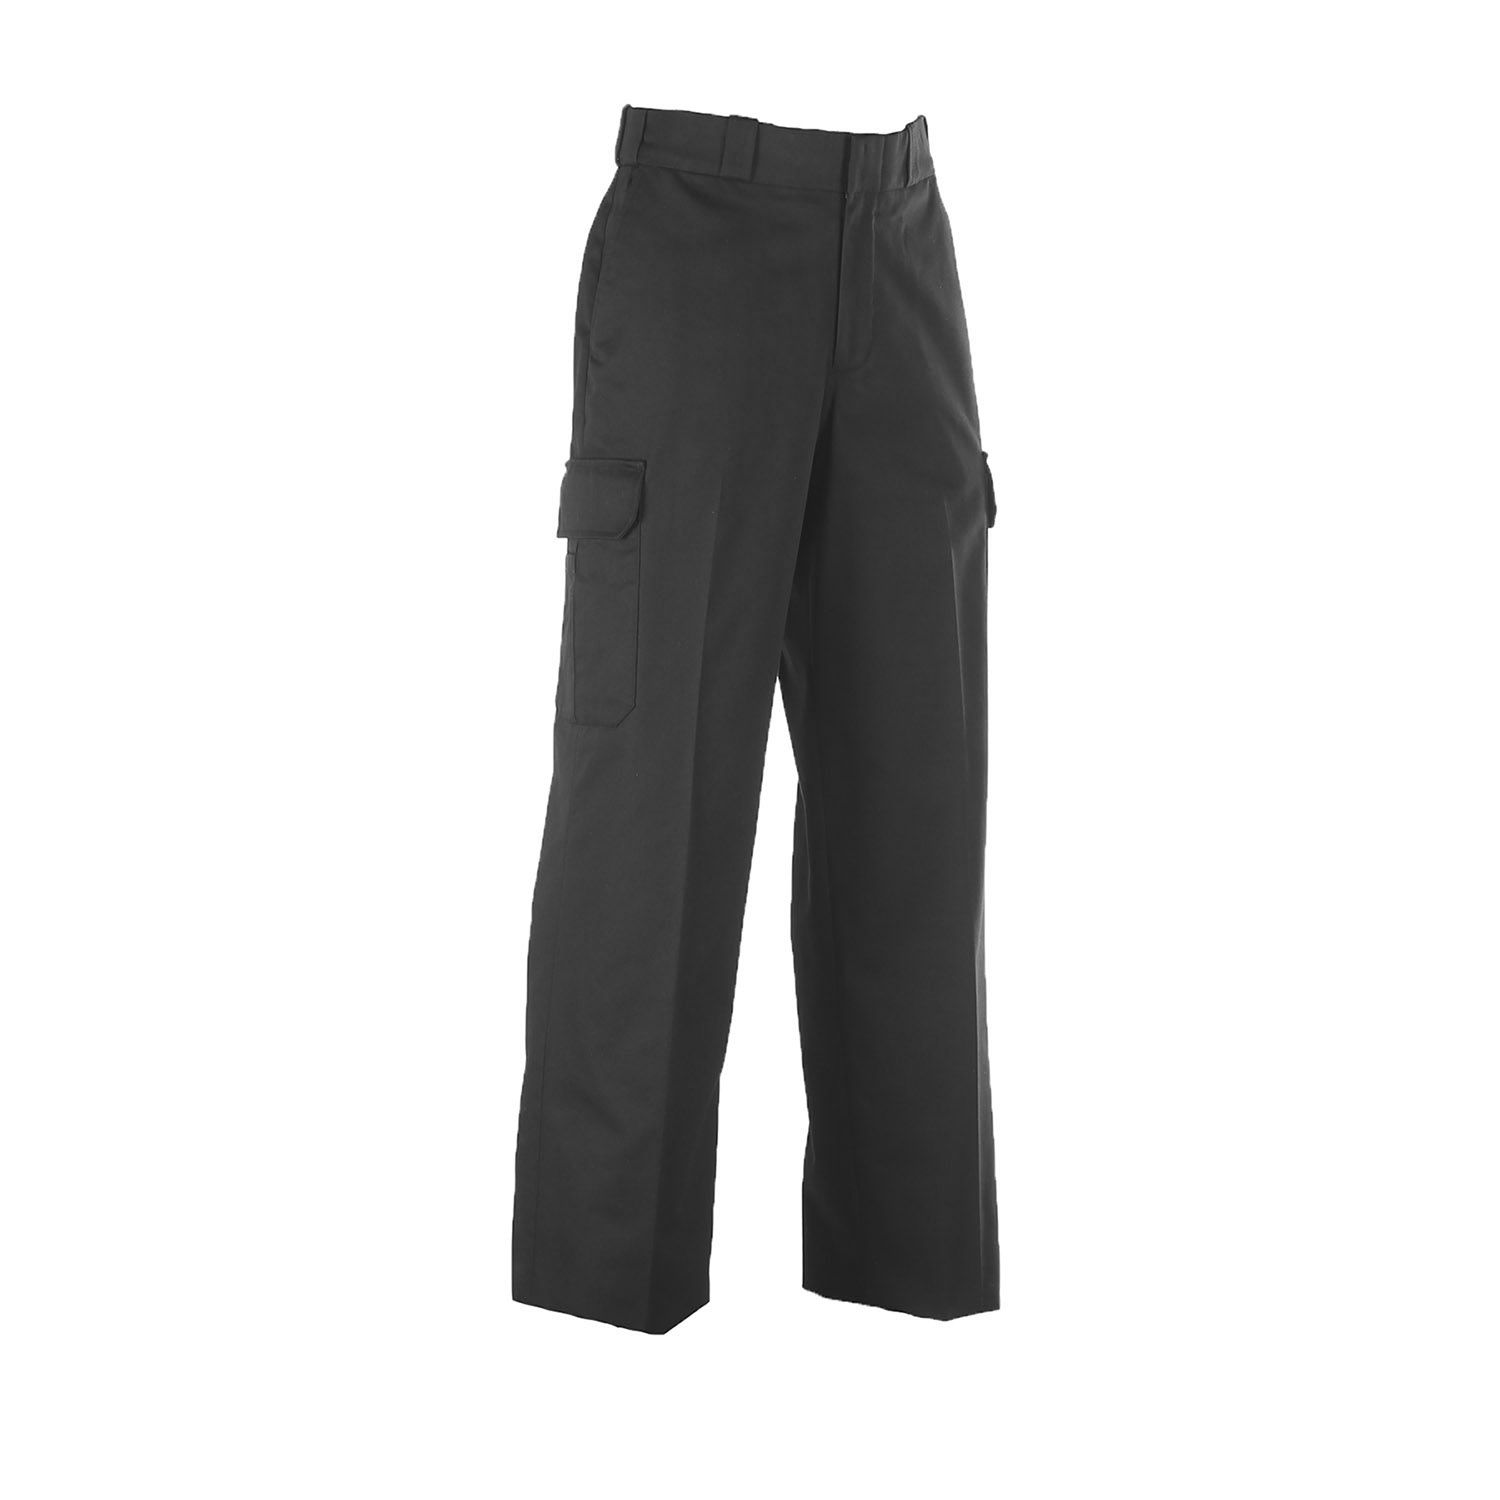 Elbeco Men's TEK3 Cargo Pants